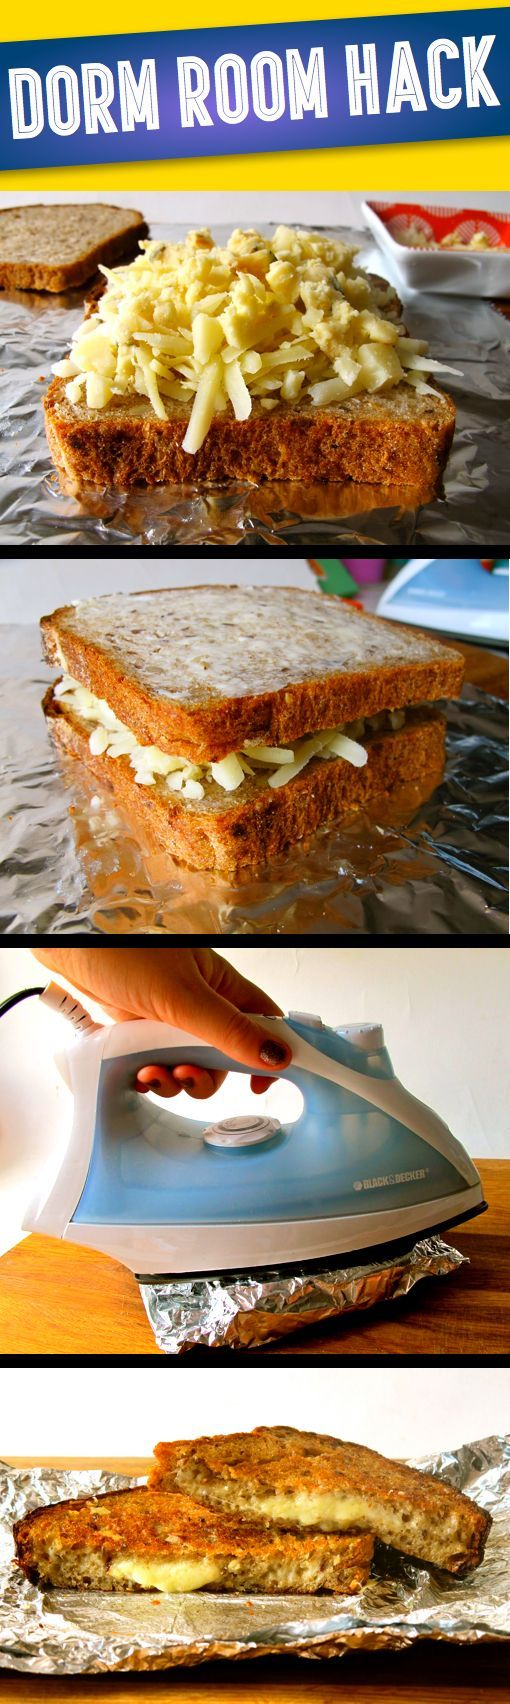 Dorm Room Grilled Cheese Sandwiches. This reminds me so much of my old college days,.. <3 ...